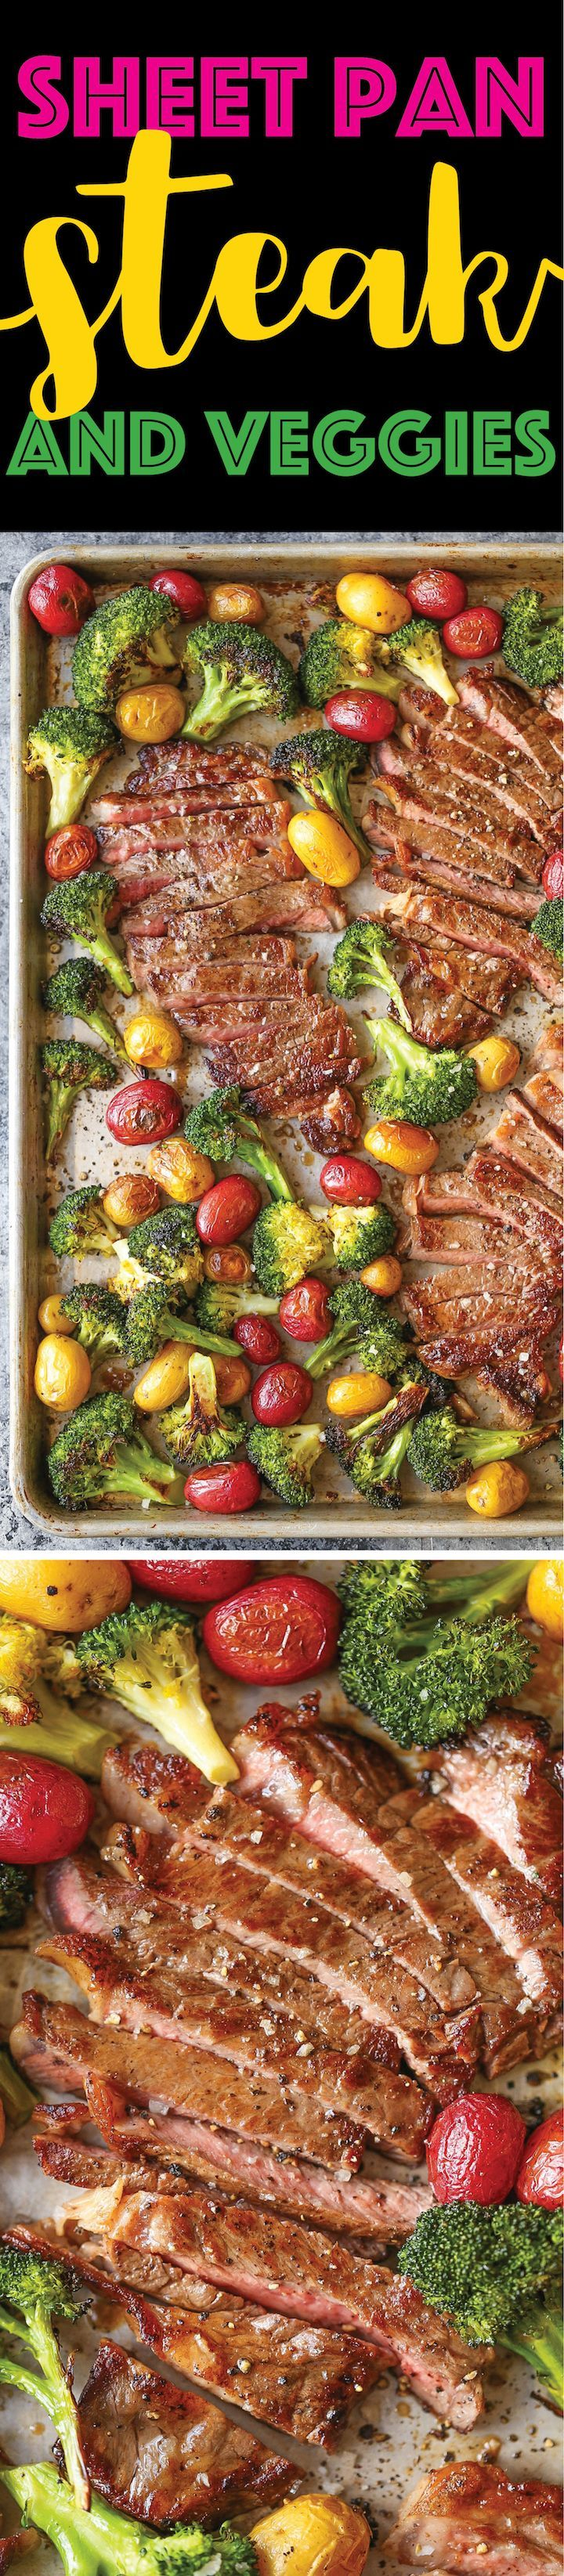 Sheet Pan Steak and Veggies - Perfectly seasoned, melt-in-your-mouth tender steak with potatoes and broccoli. All made on 1 single sheet pan! EASY CLEAN UP!  #recipes #recipesfordinner #recipeseasy #recipeshealthy #recipeswithgroundbeef #recipesfordinnereasy